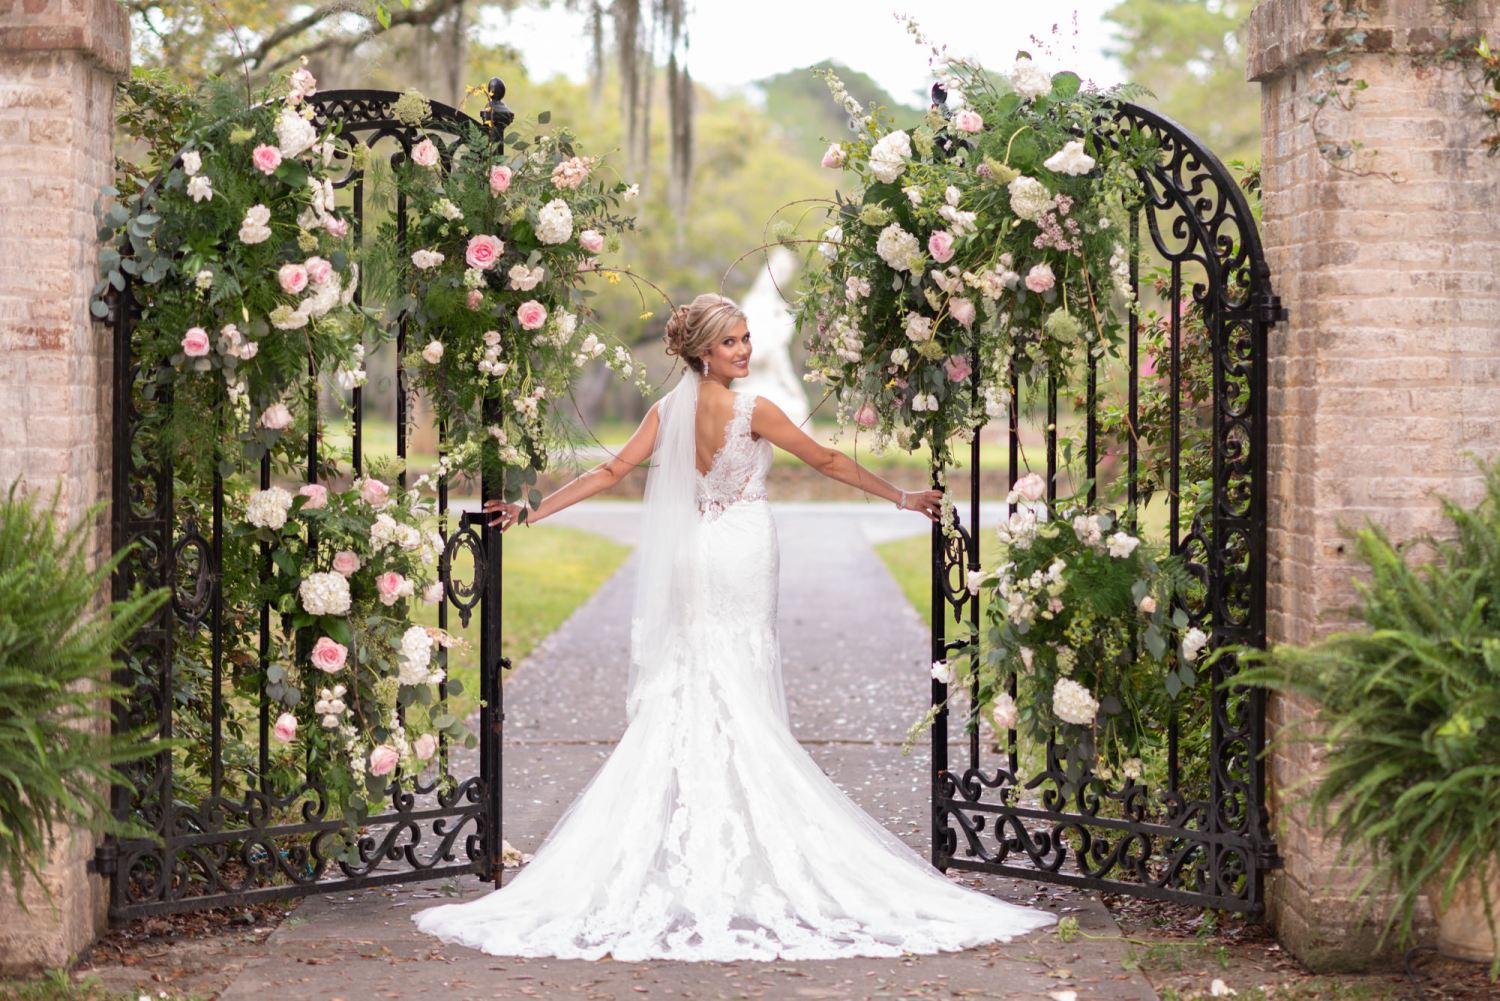 Bride walking through the garden gates - Brookgreen Gardens